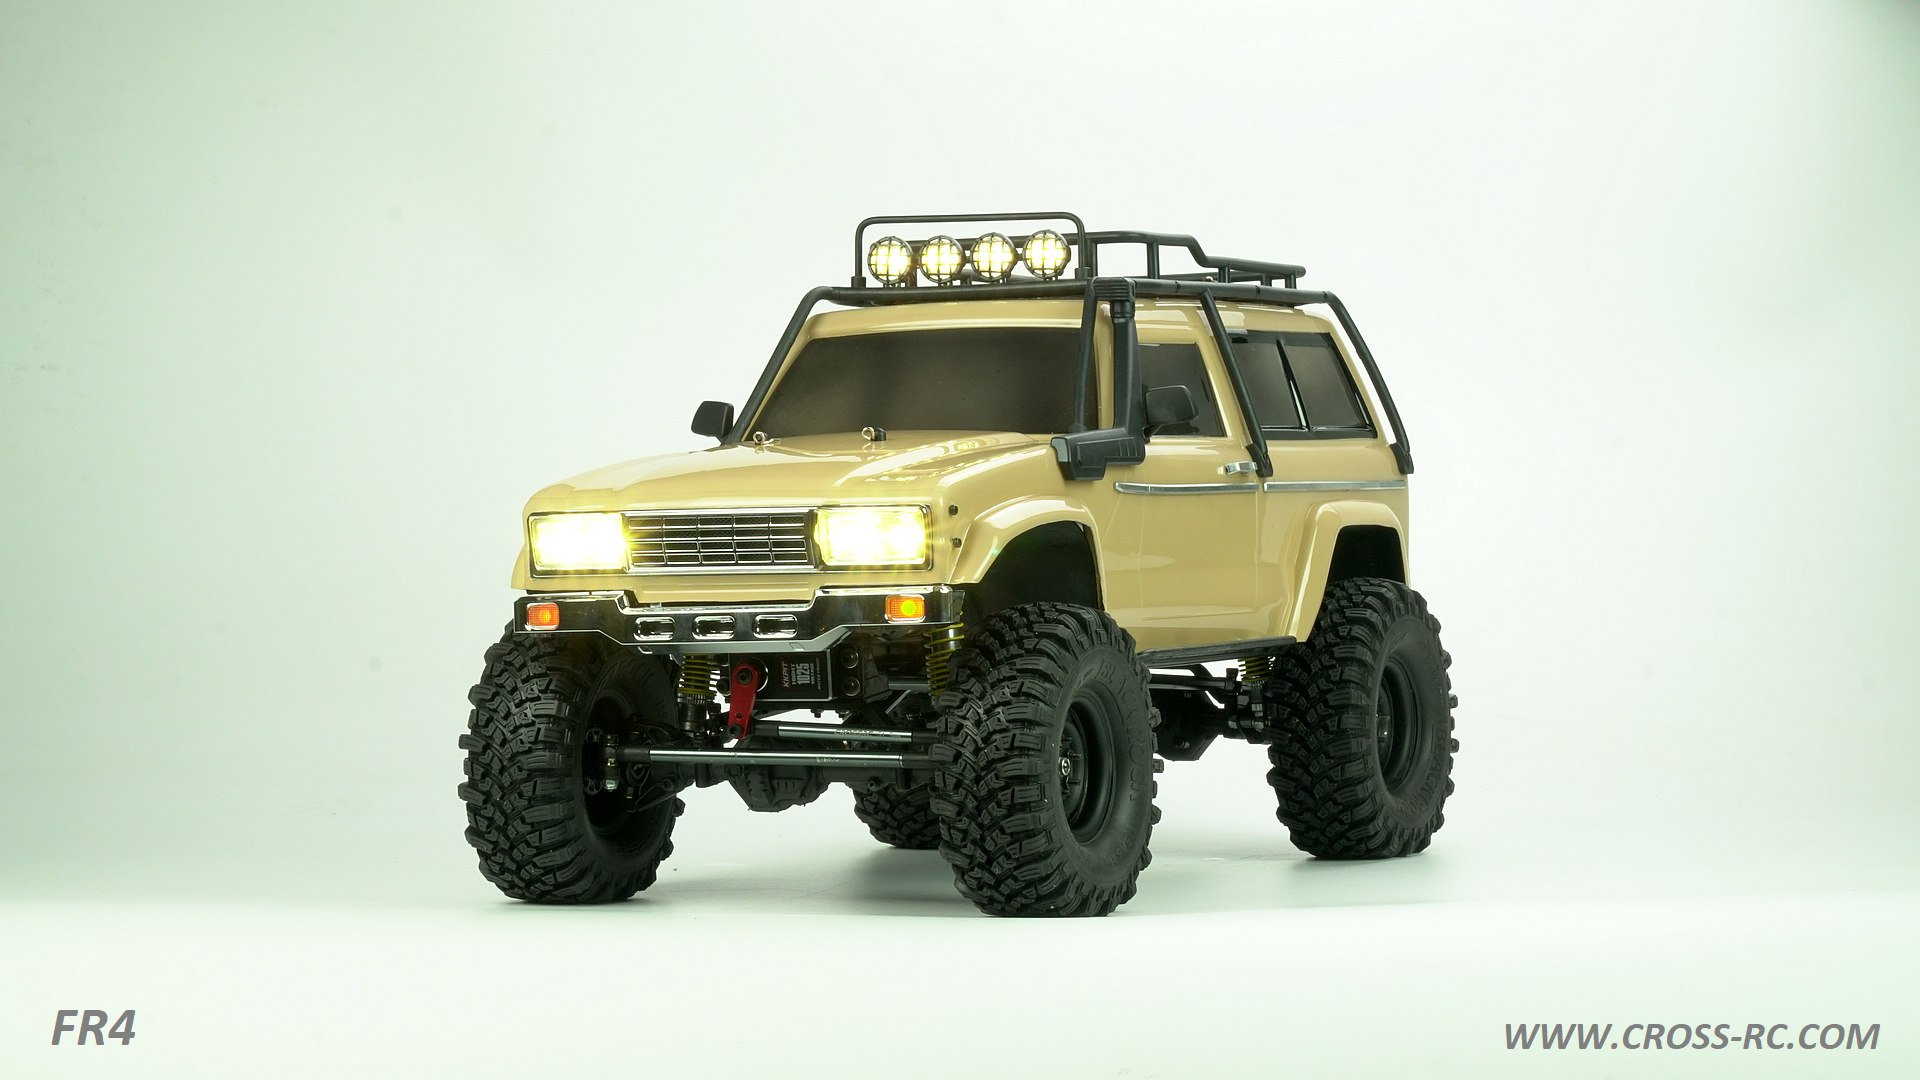 Cross RC FR4 4×4 Crawler Kit Series